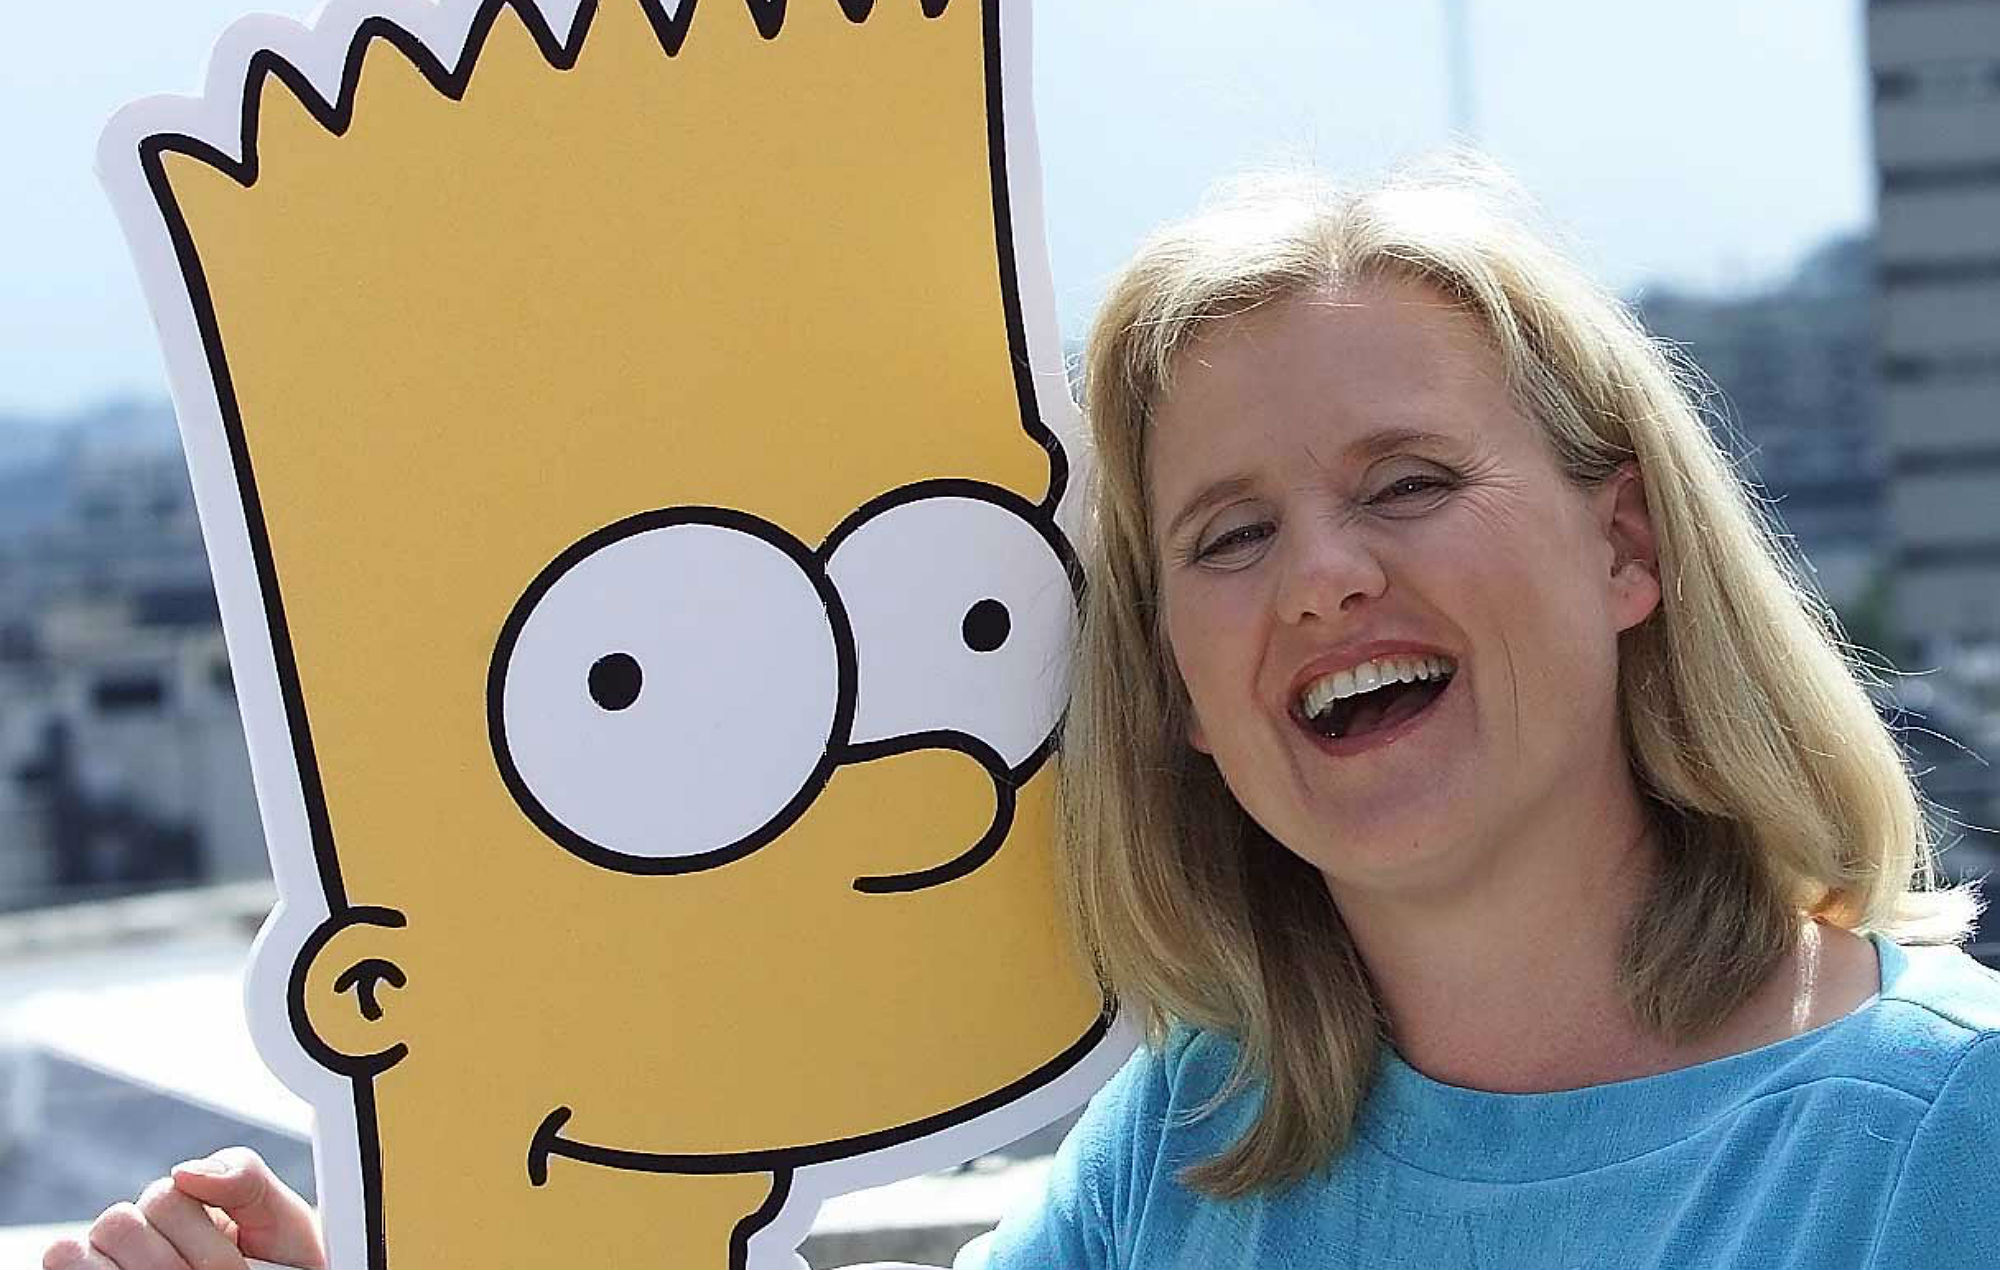 Nancy Cartwright, the voice of Bart, has finally scripted an